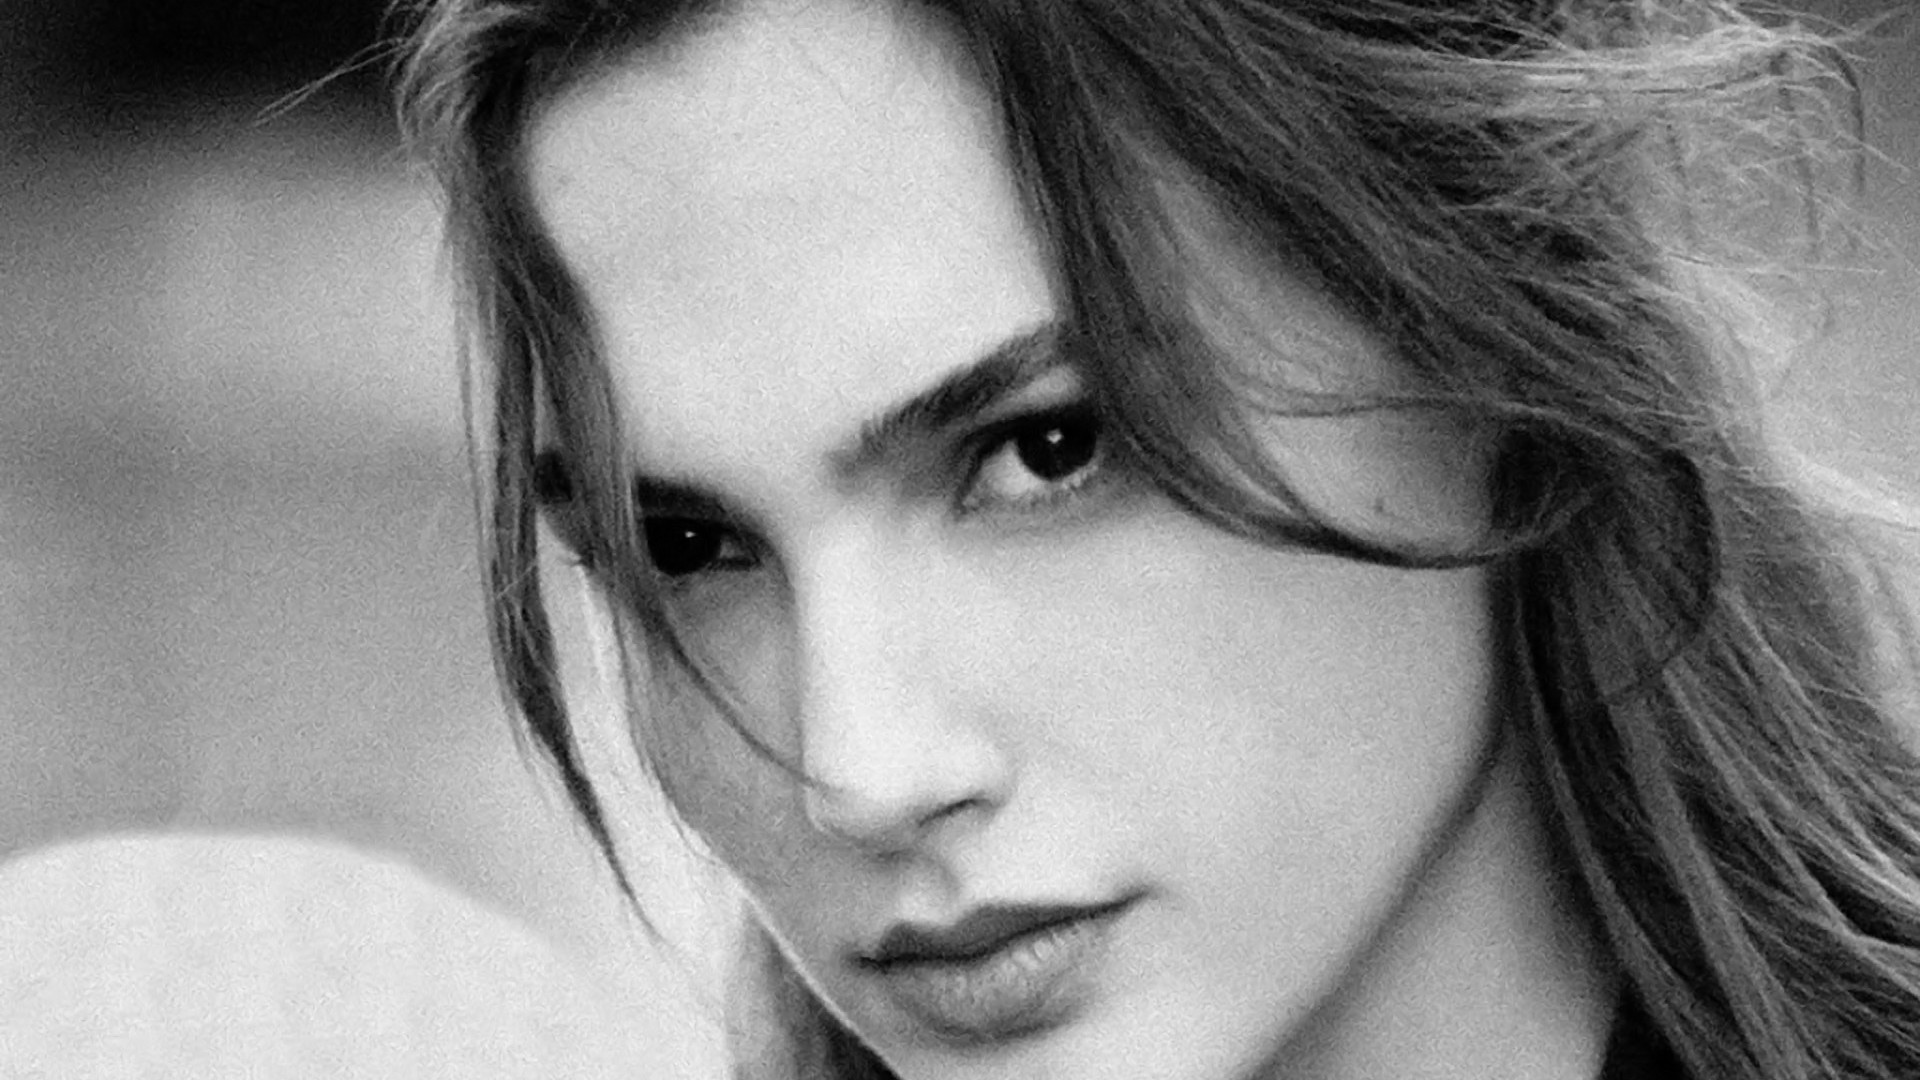 romantic gal gadot cute eye pose mobile background download hd images